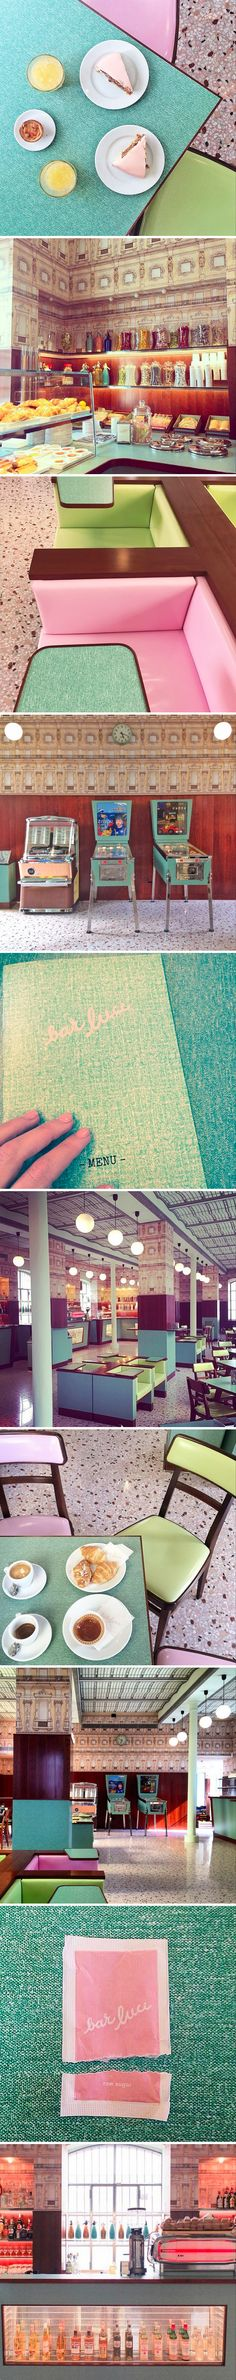 Cafe in Milan designed by Wes Anderson | Grand Budapest Hotel / Royal Tennenbaums